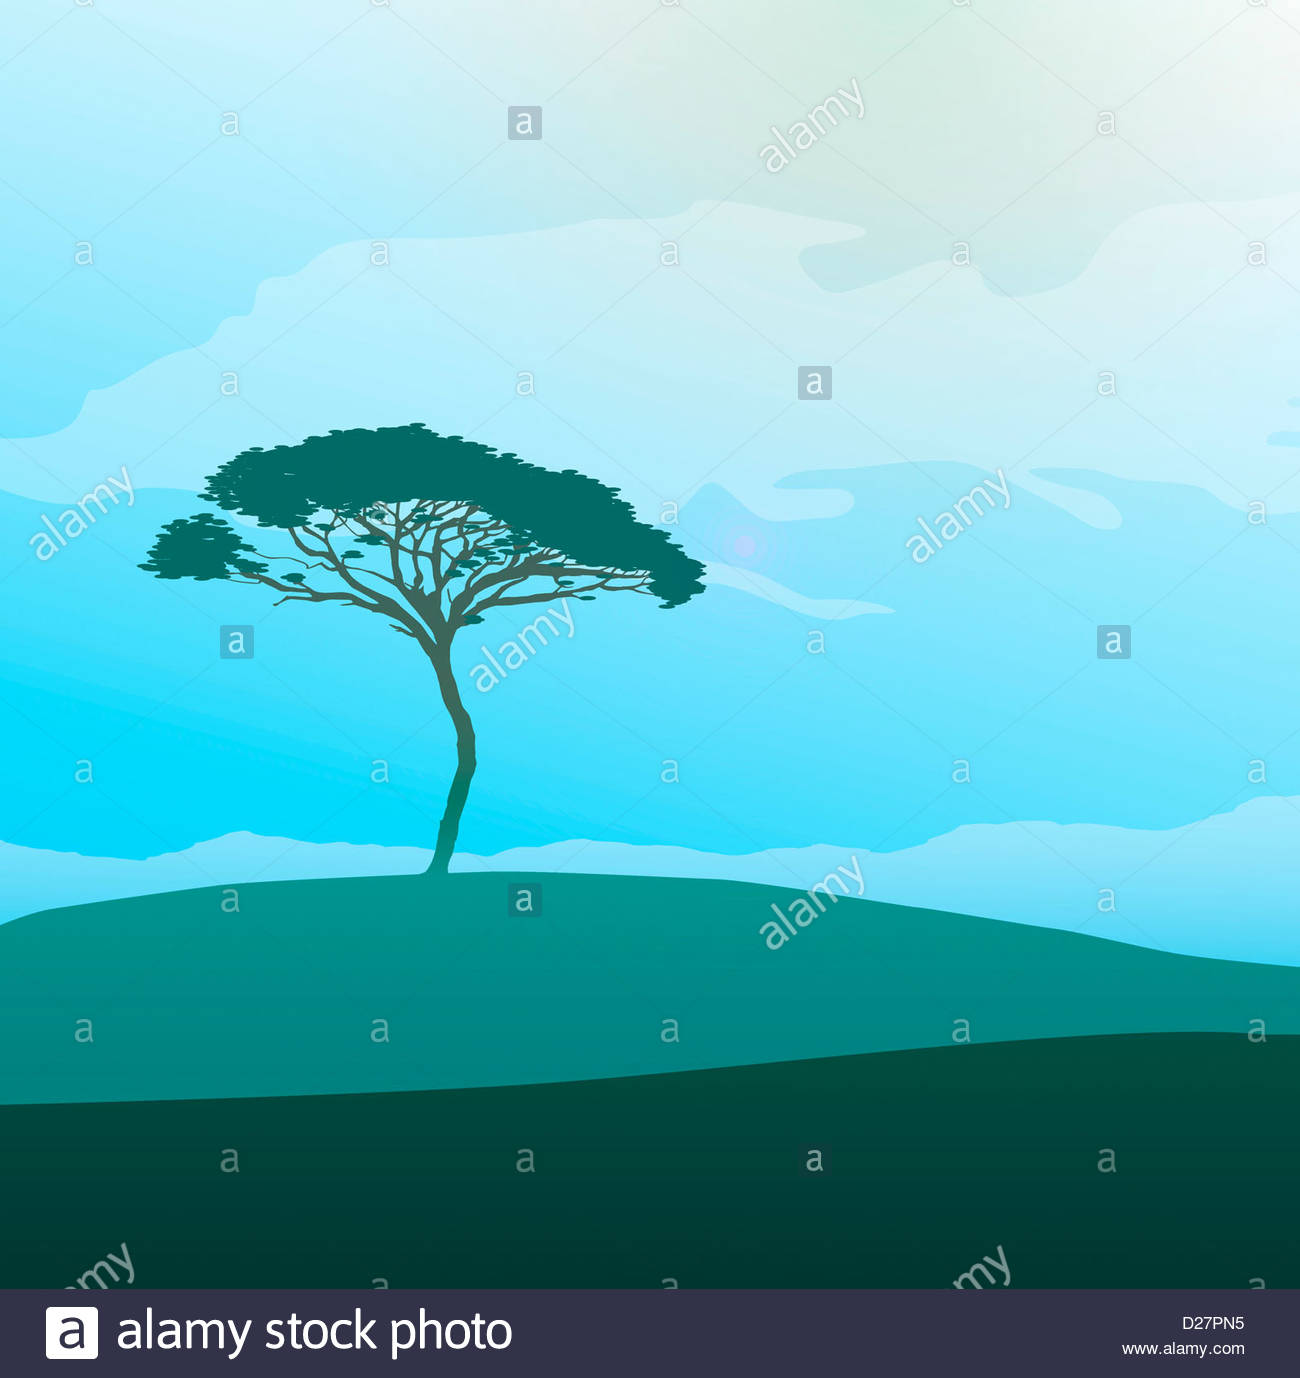 Tree in tranquil field - Stock Image